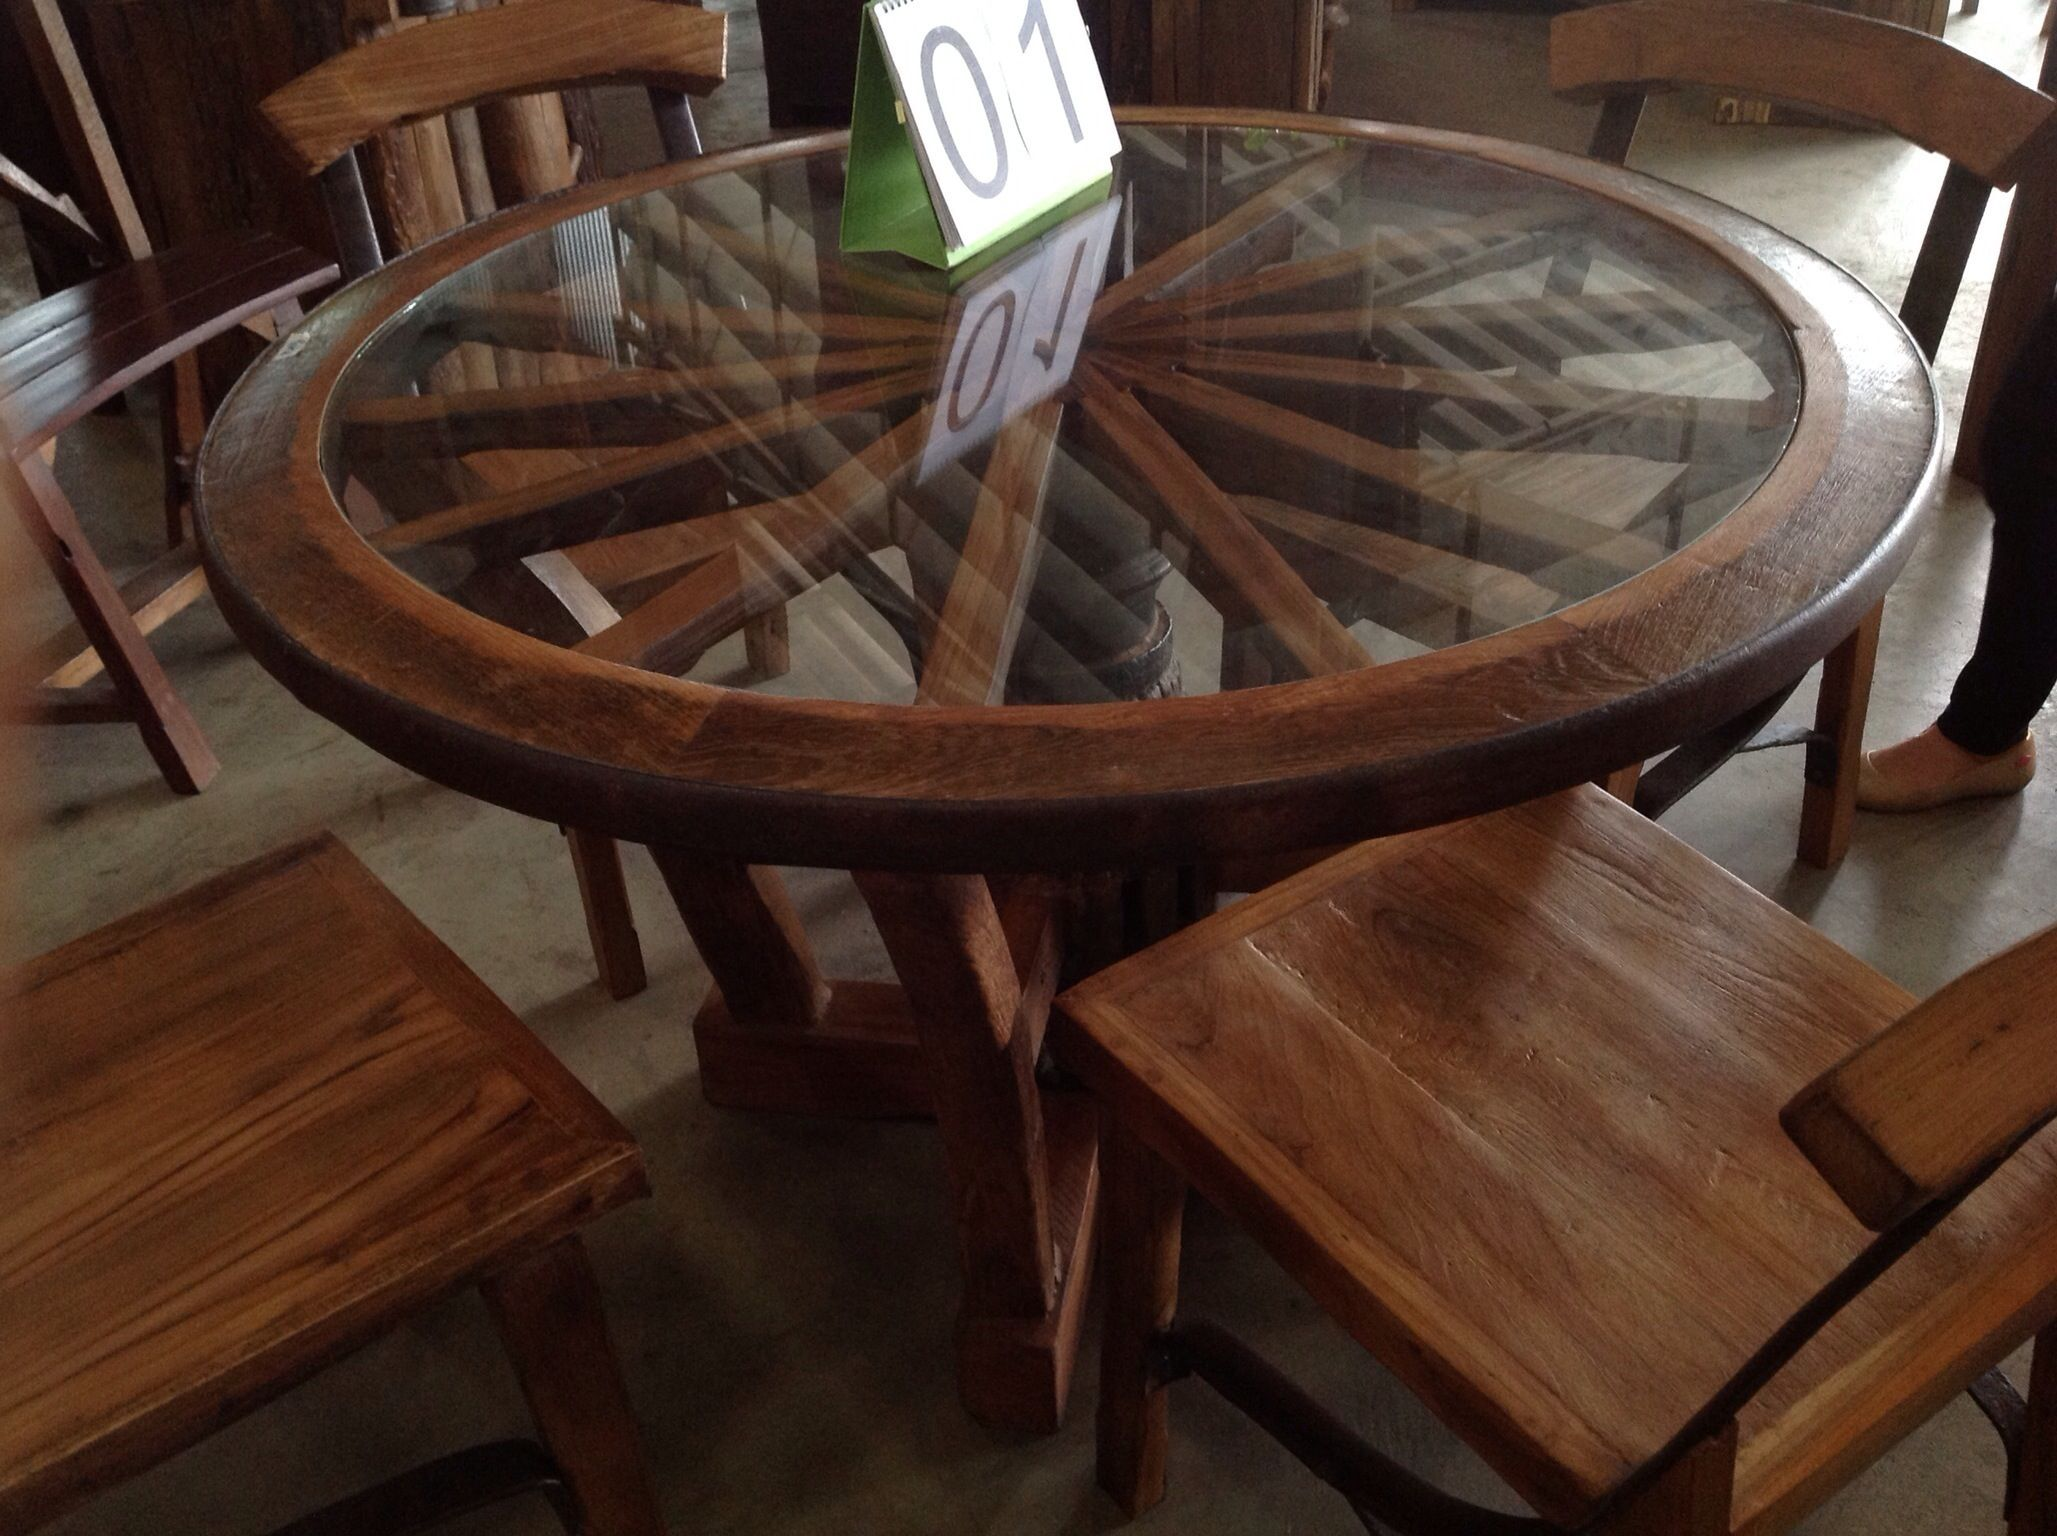 Wooden Wheel Table ~ Handcrafted reclaimed wagon wheel teak wood dining table